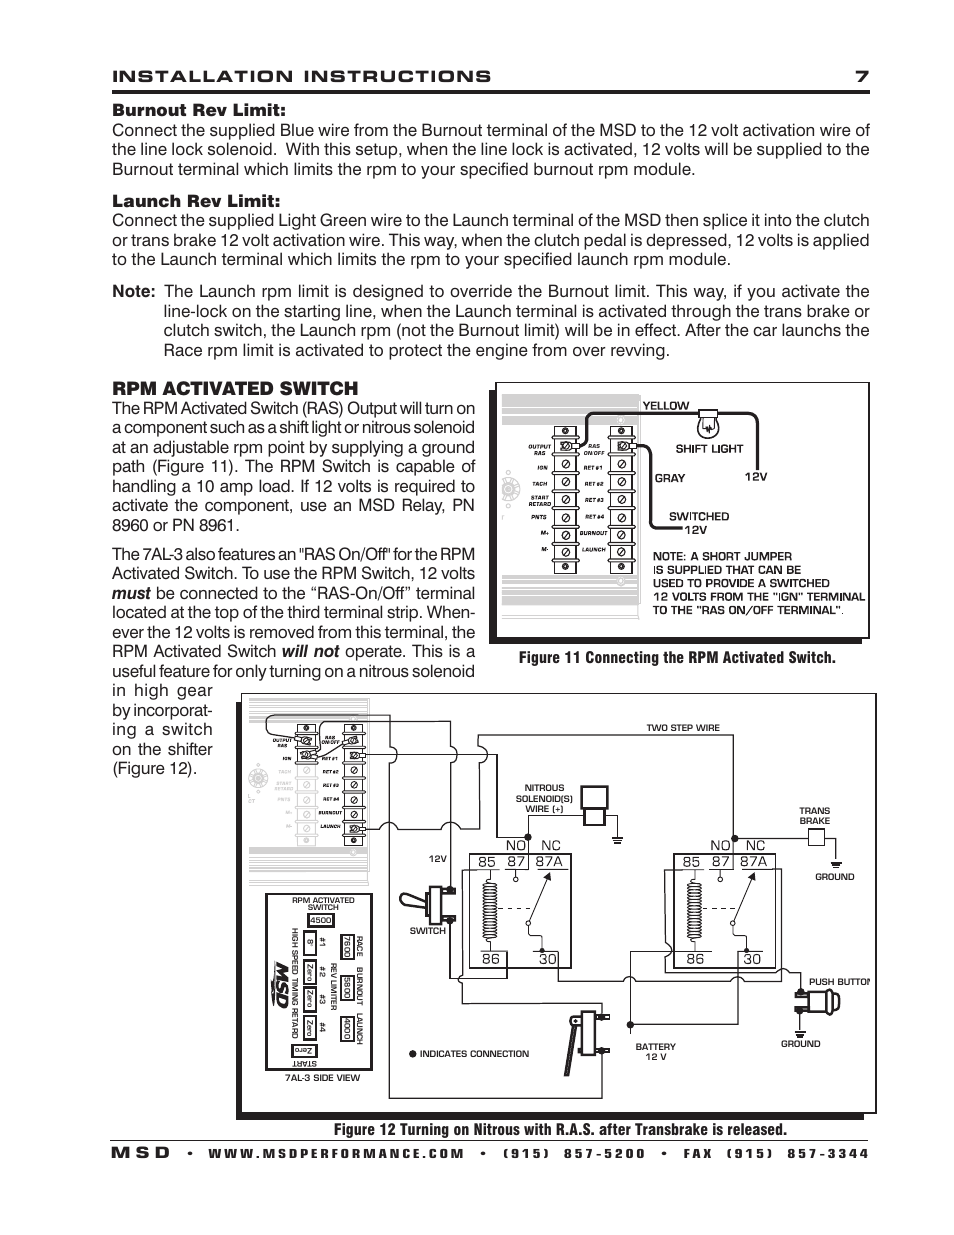 msd 7al 3 wiring basic wiring diagram \u2022 msd 3 step wiring-diagram msd 7al 3 7230 wiring diagram enthusiast wiring diagrams u2022 rh rasalibre co msd 7al3 wiring